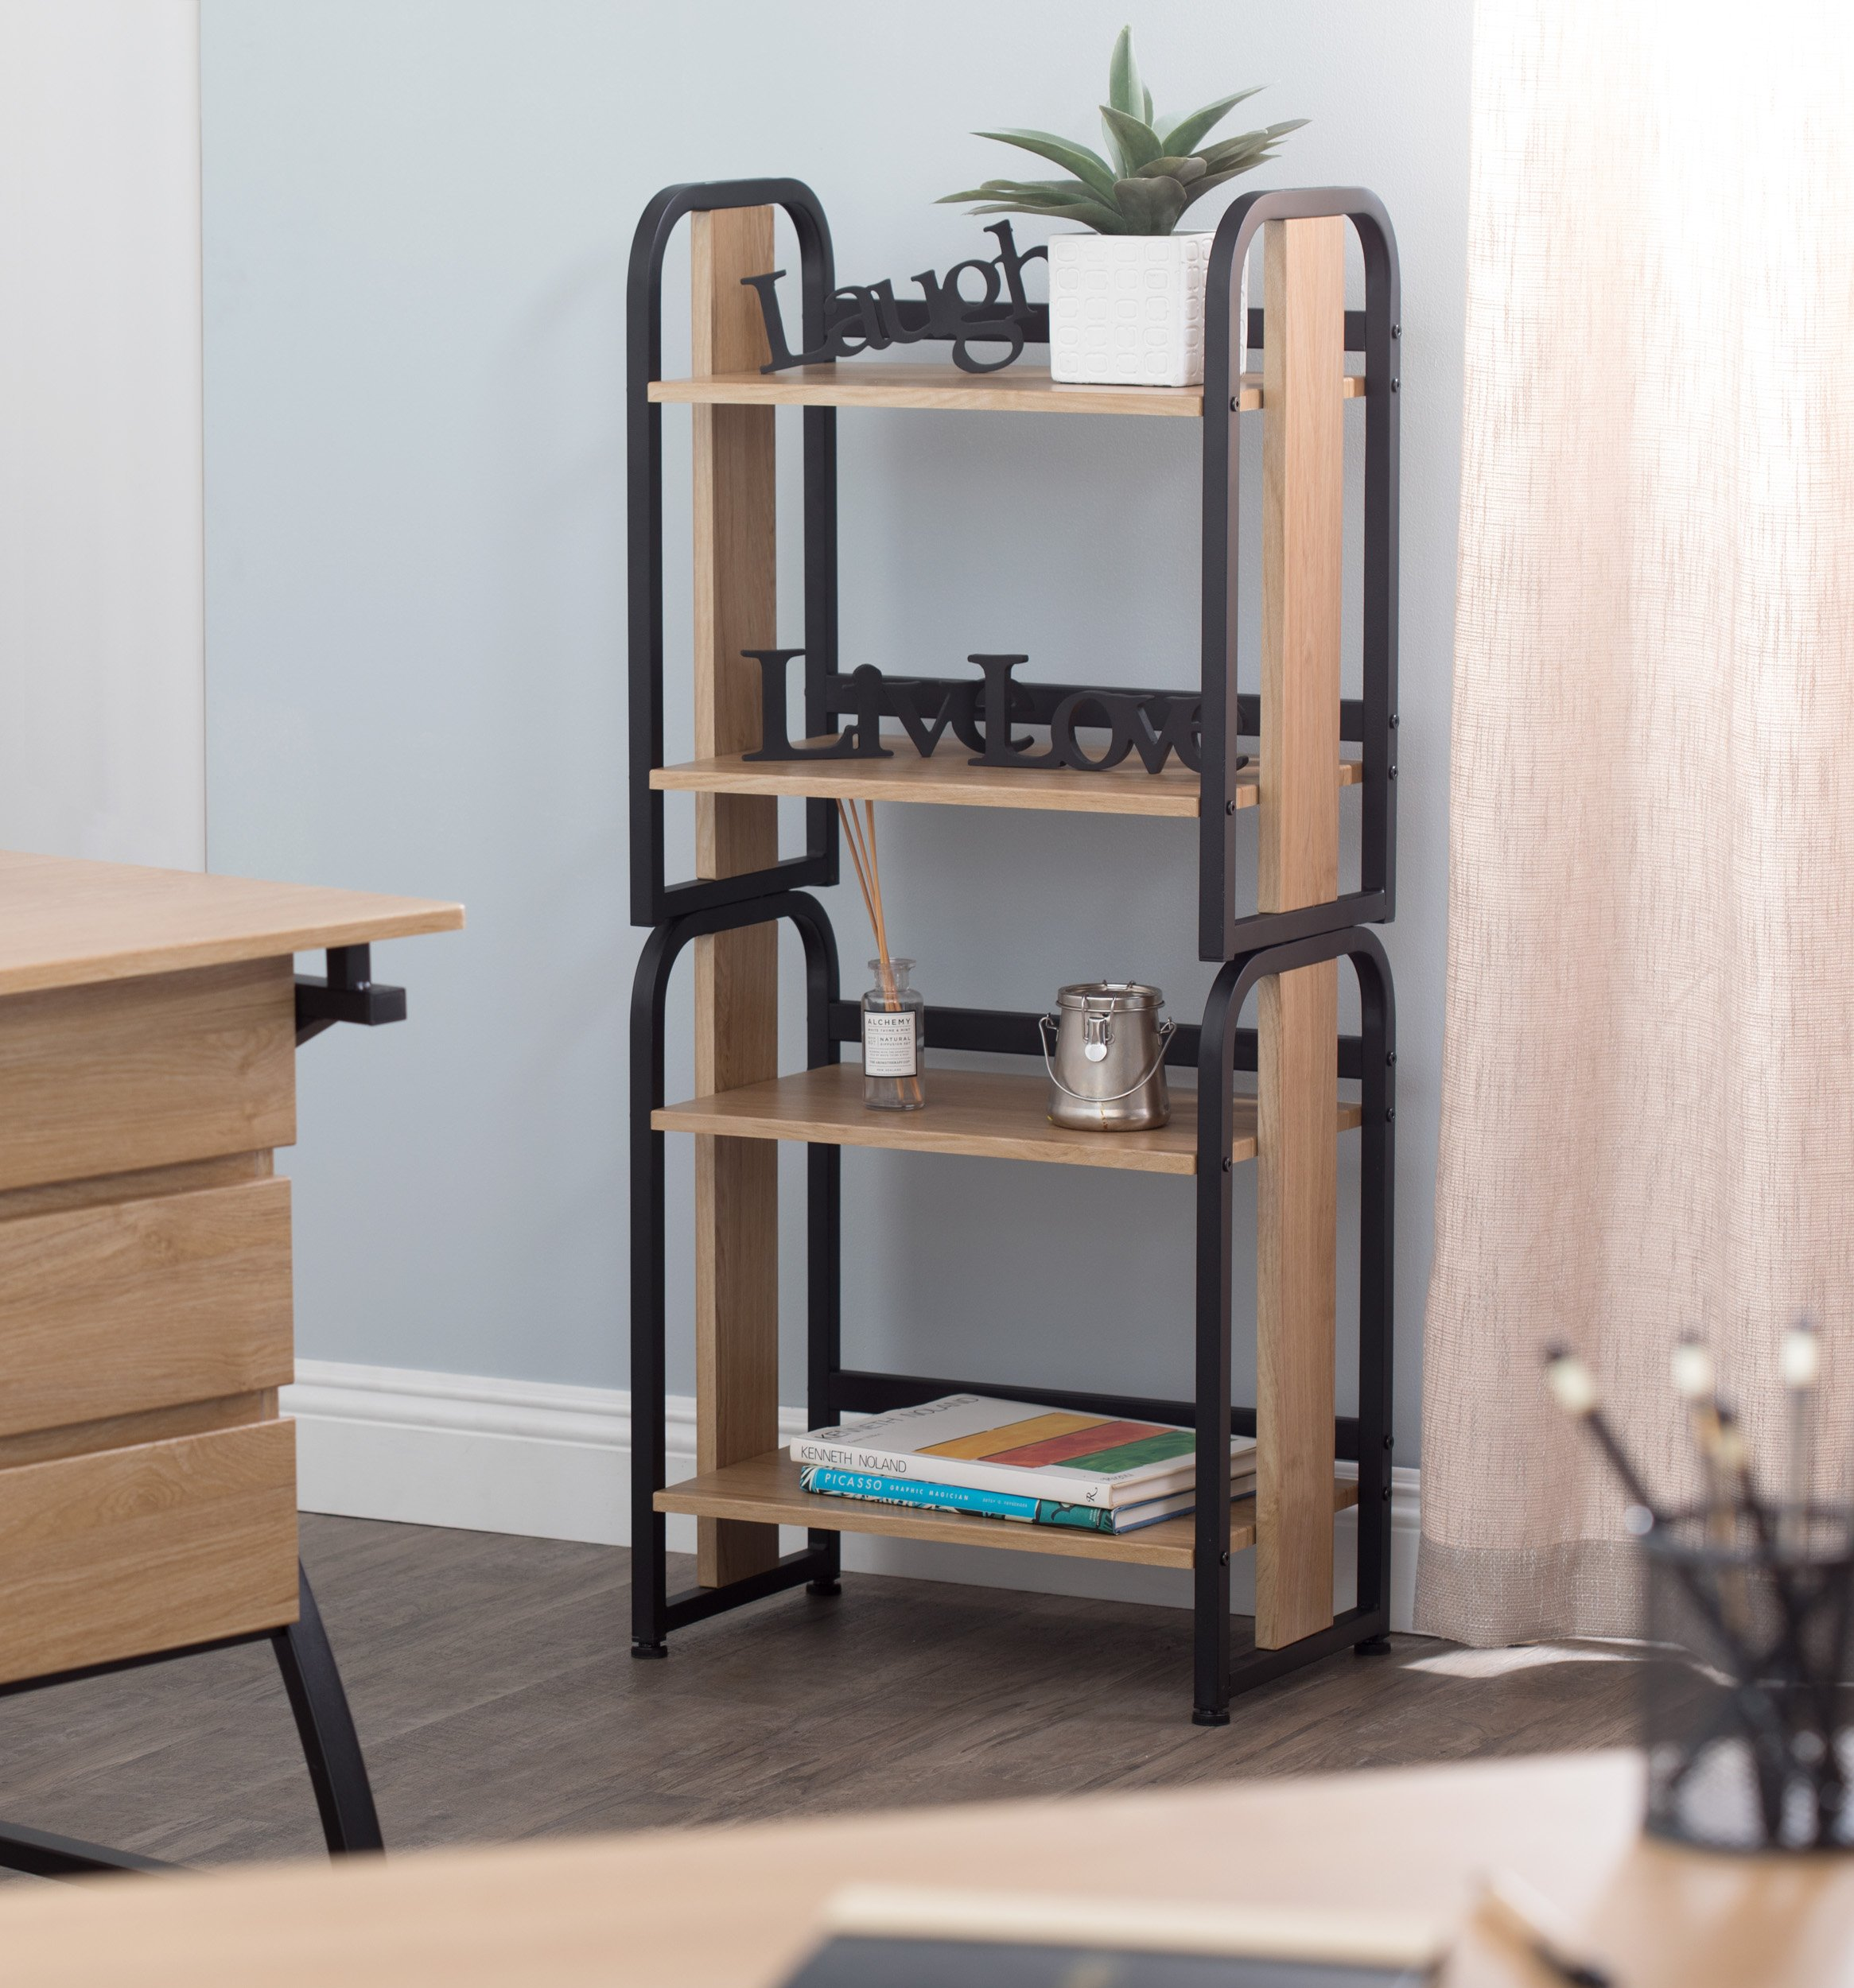 Calico Designs 51249 Modern Ashwood Stackable Bookshelf, Graphite Ashwood by Calico Designs (Image #3)